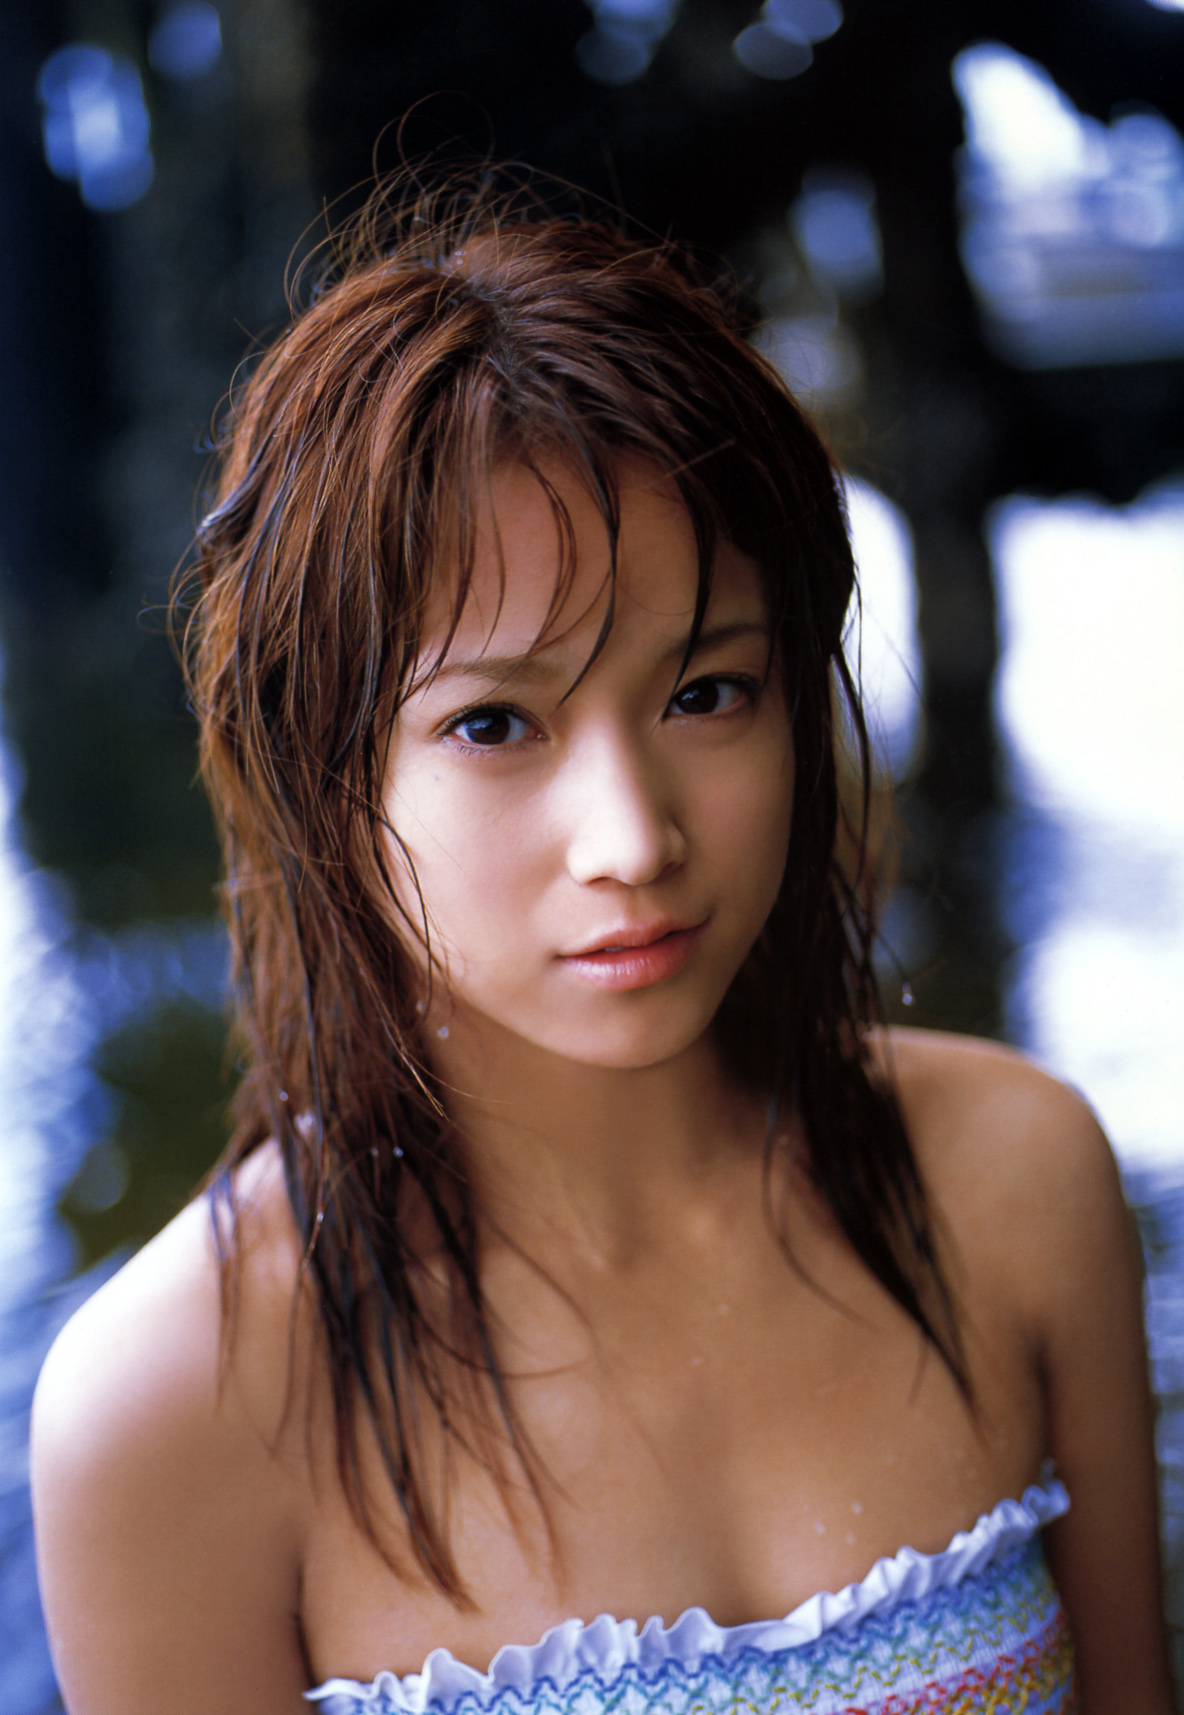 My Favorite 6th Generation Member: Eri Kamei!